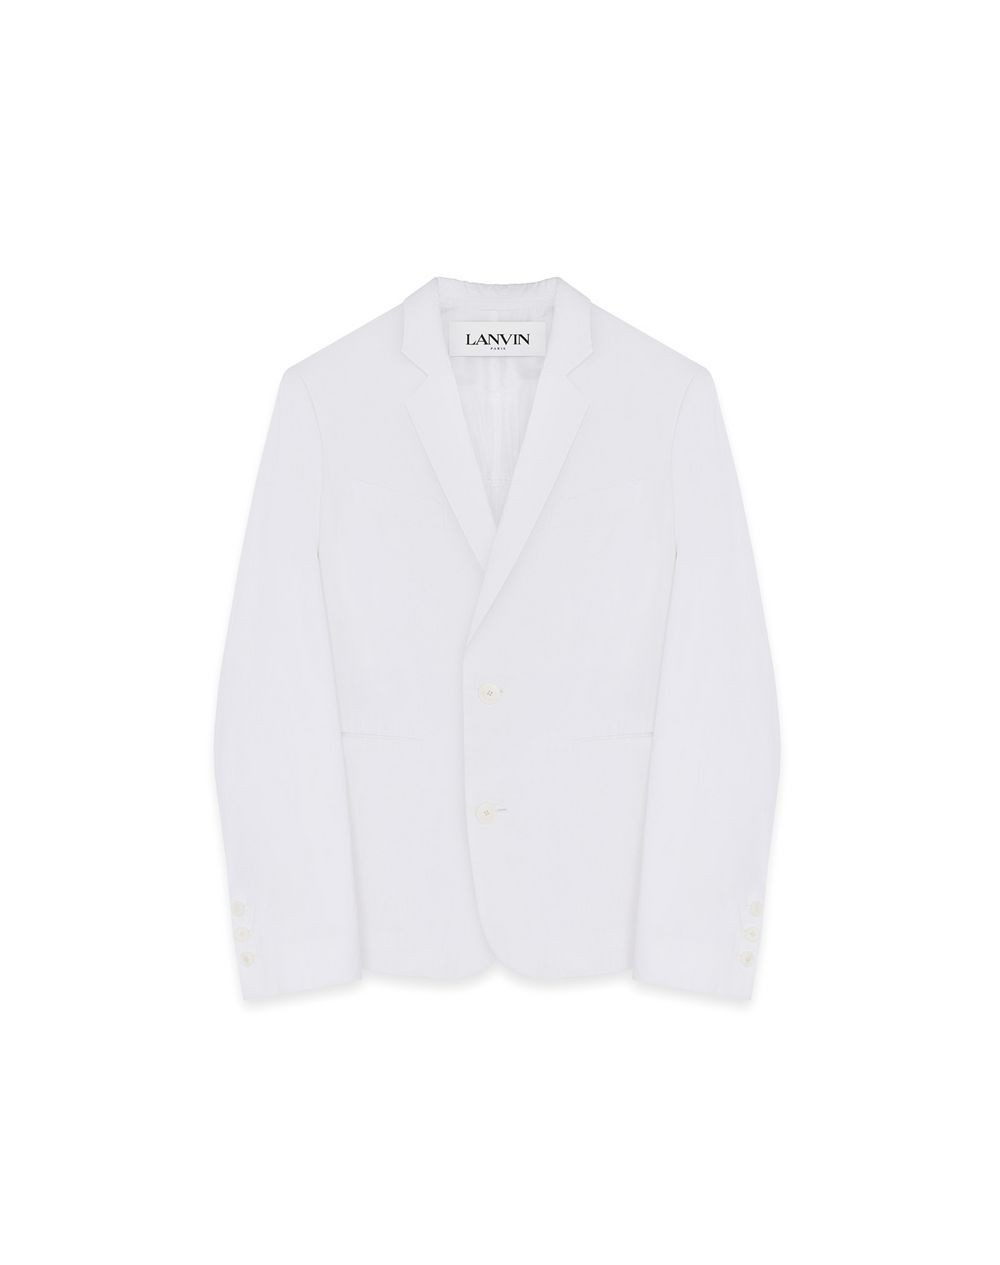 TAILORED PLEATED-EFFECT JACKET - Lanvin